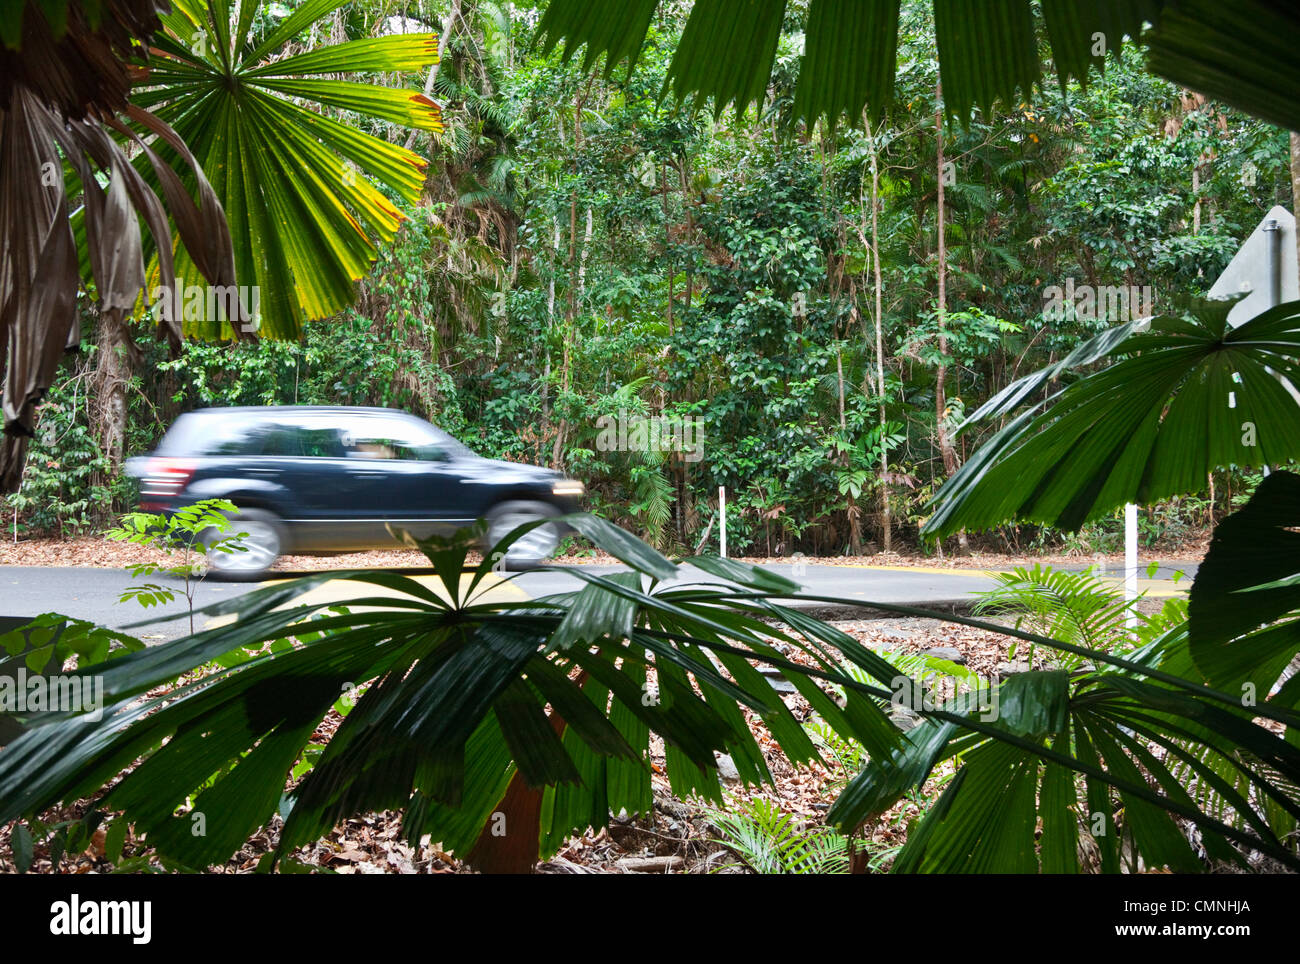 Car driving on rainforest road in Daintree National Park, Queensland, Australia - Stock Image